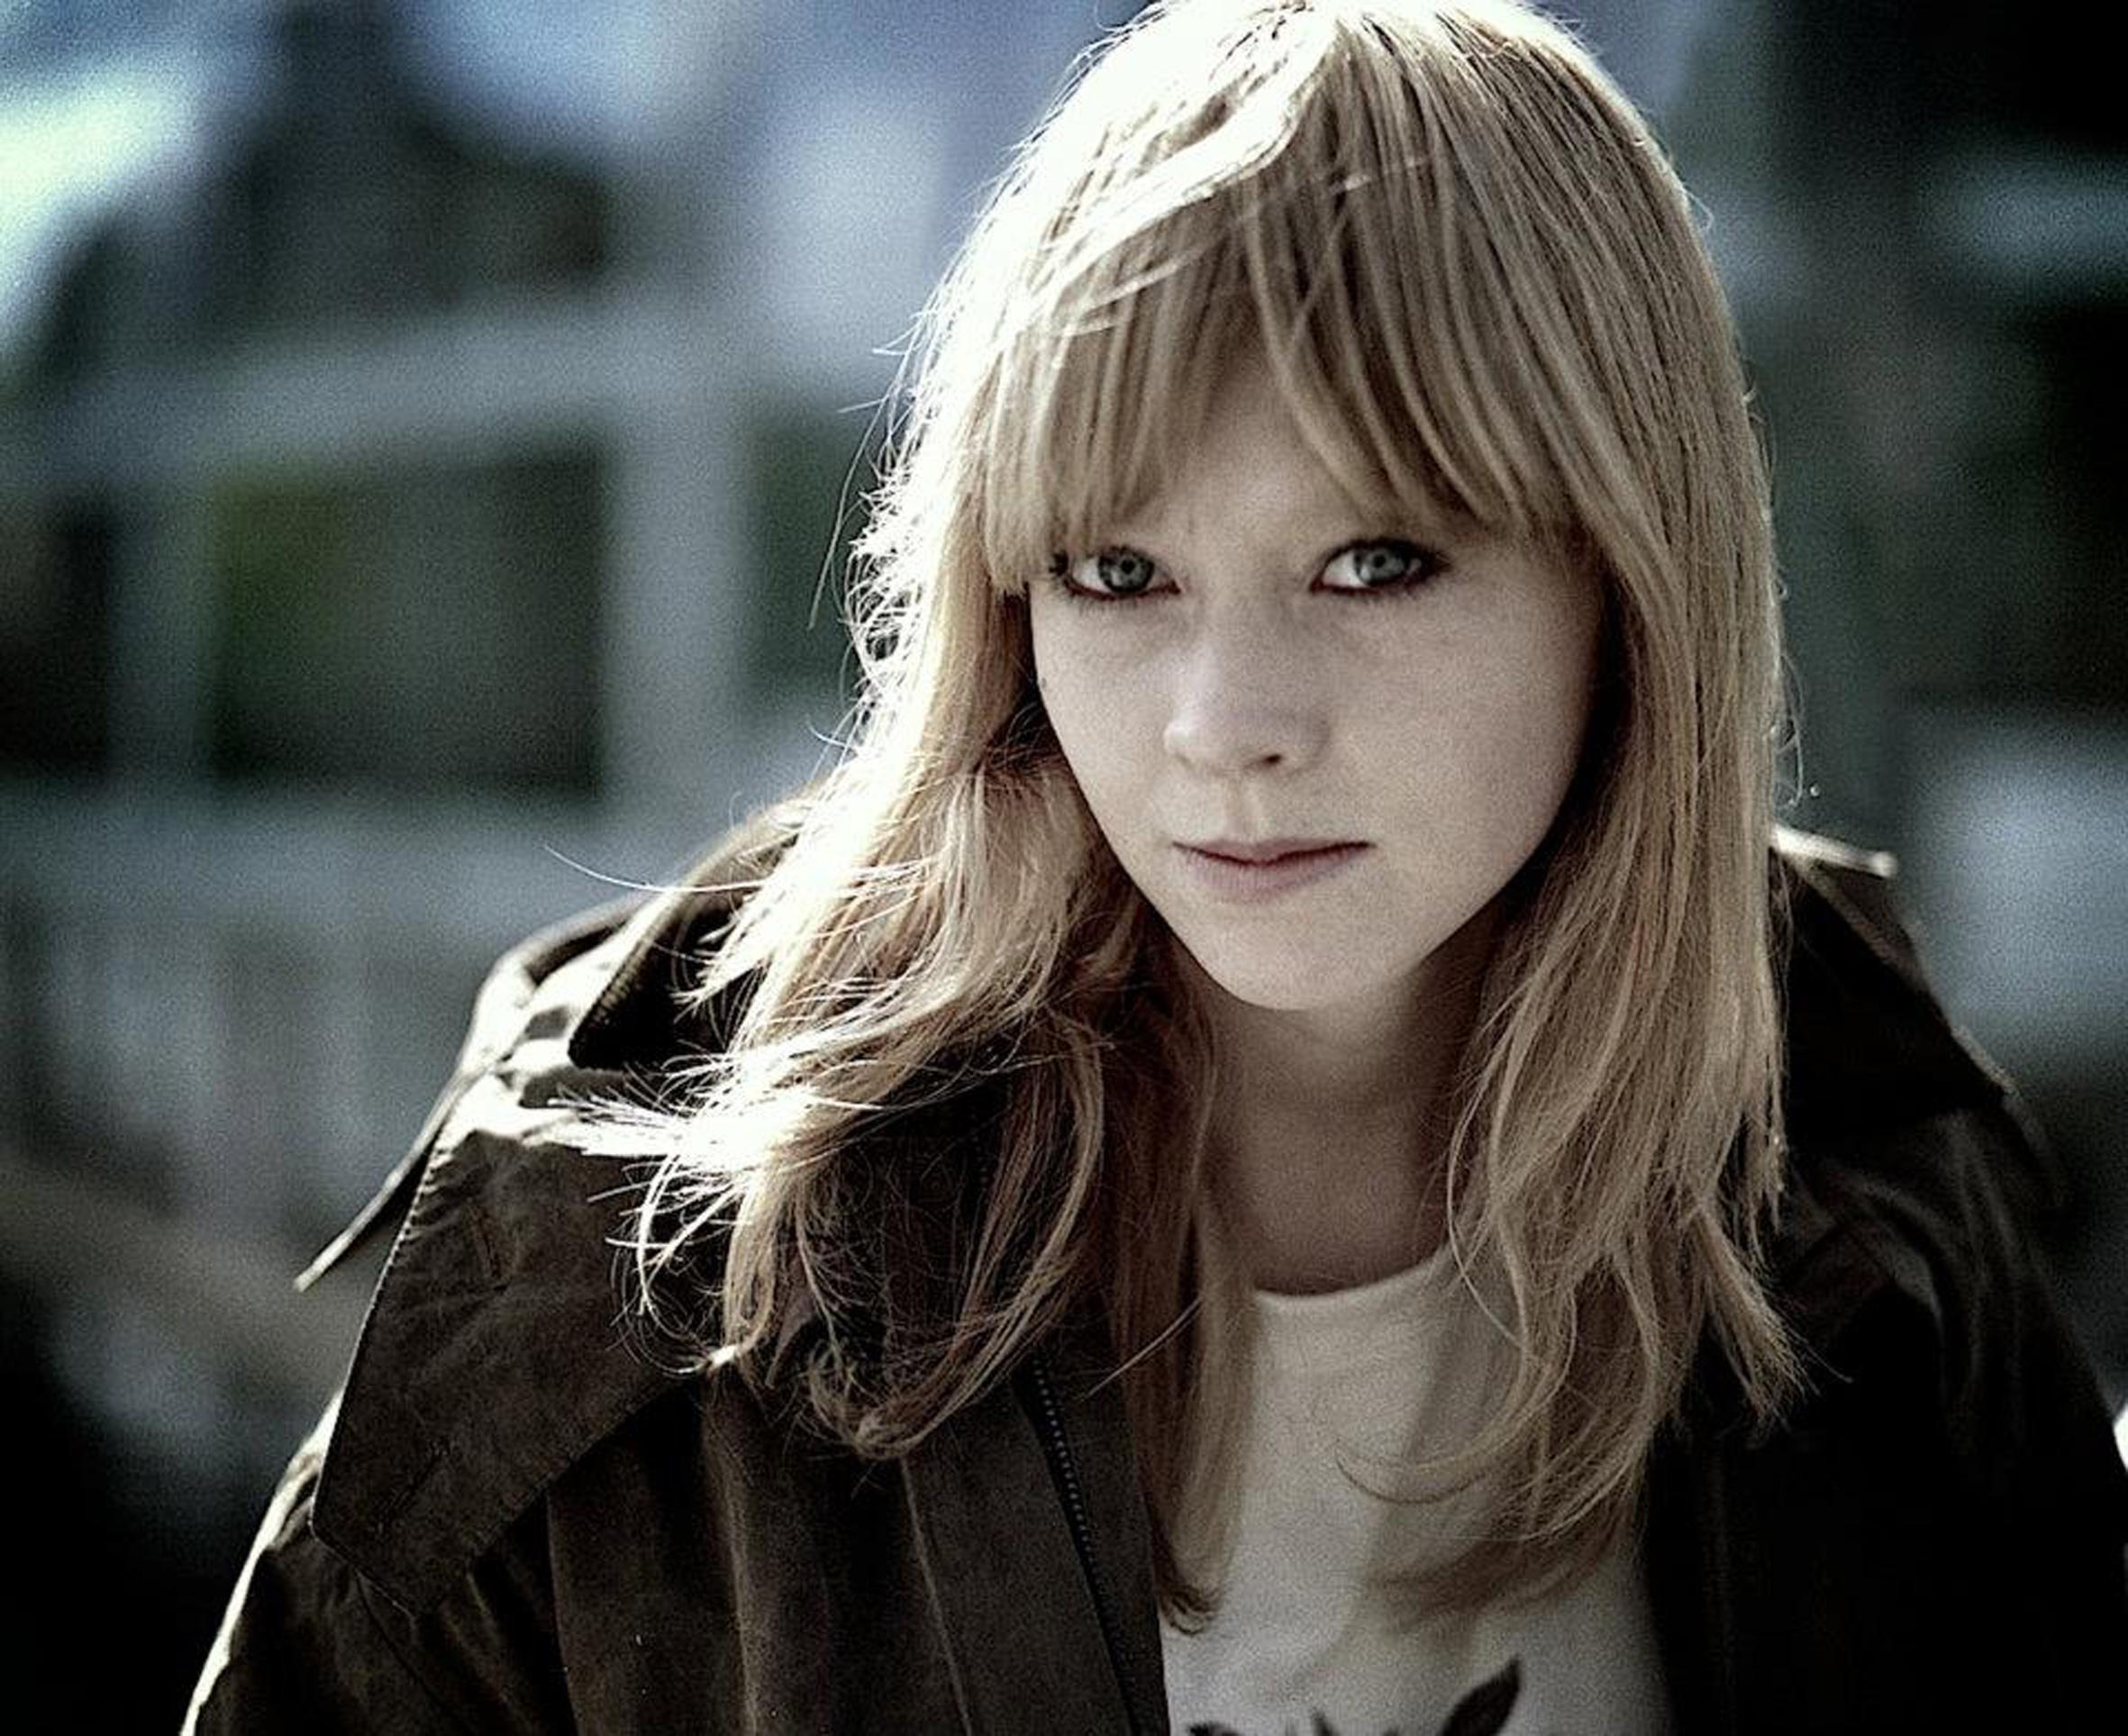 Lucy Rose, Leeds Brudenell Social Club, March 15